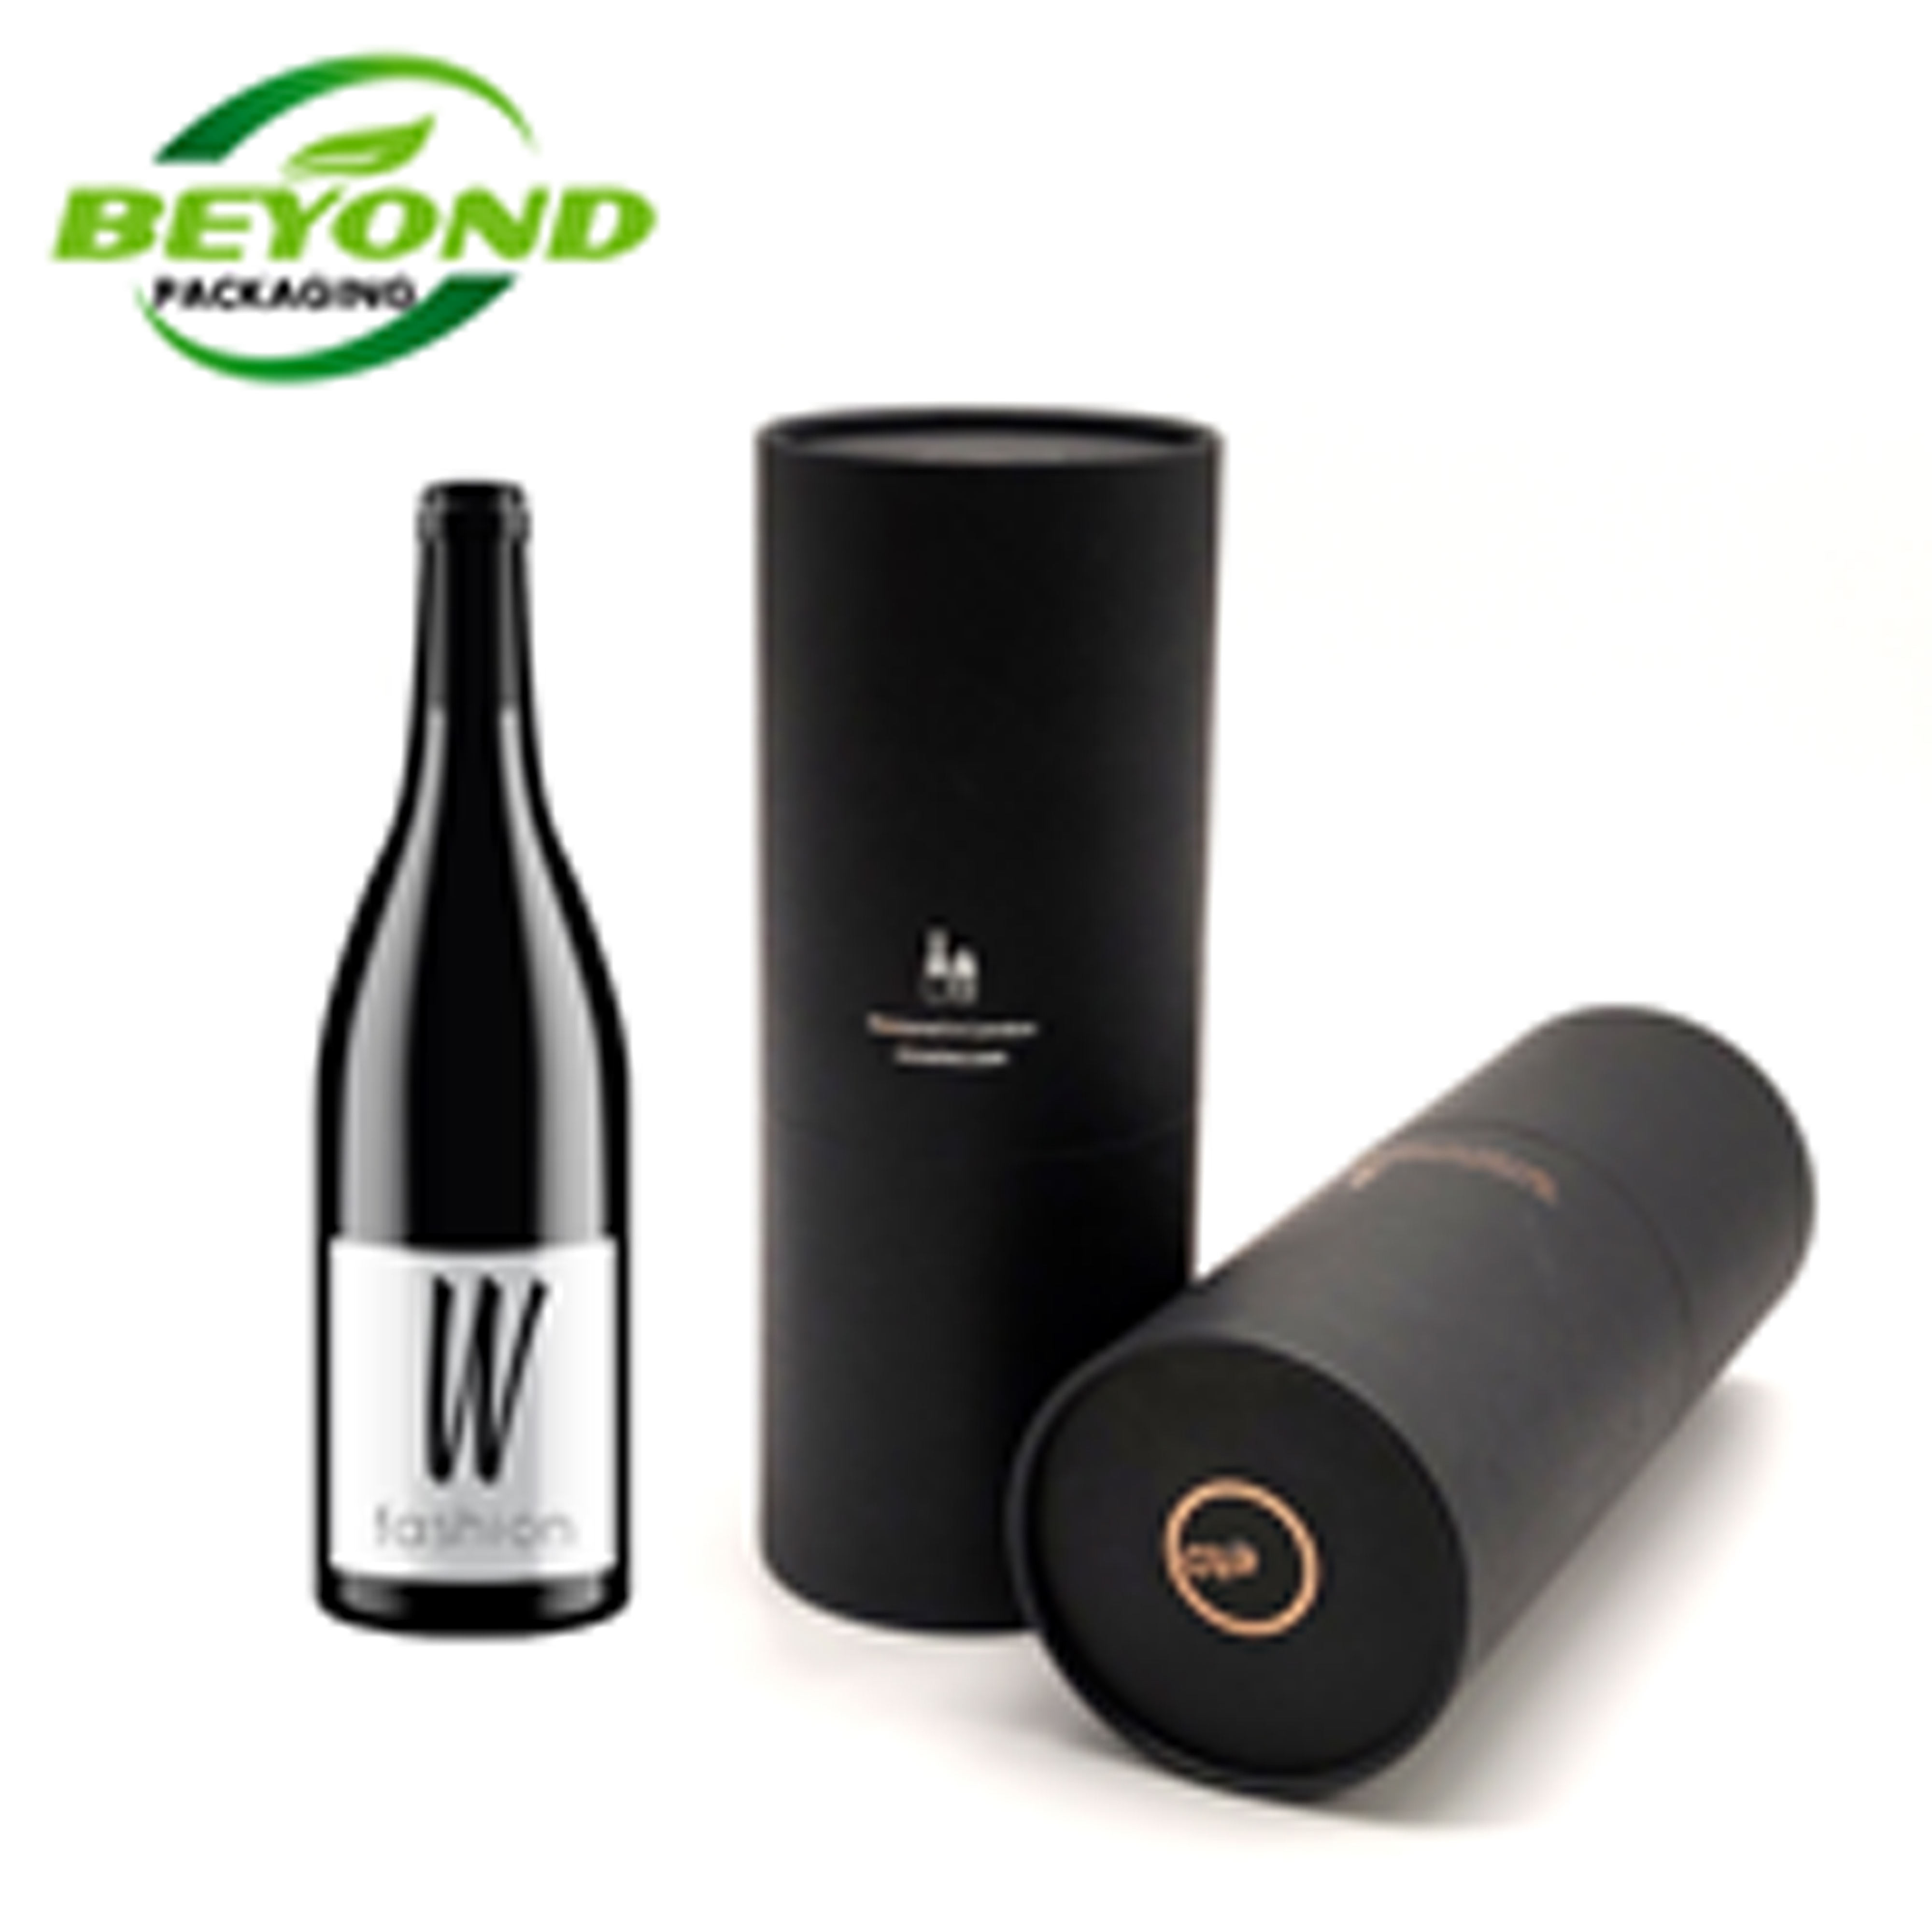 Recycled Luxury Customized Printing EVA Inside Black Cardboard Round Paper Tube Packaging For Whisky Wine/ Water Bottle Gift Box